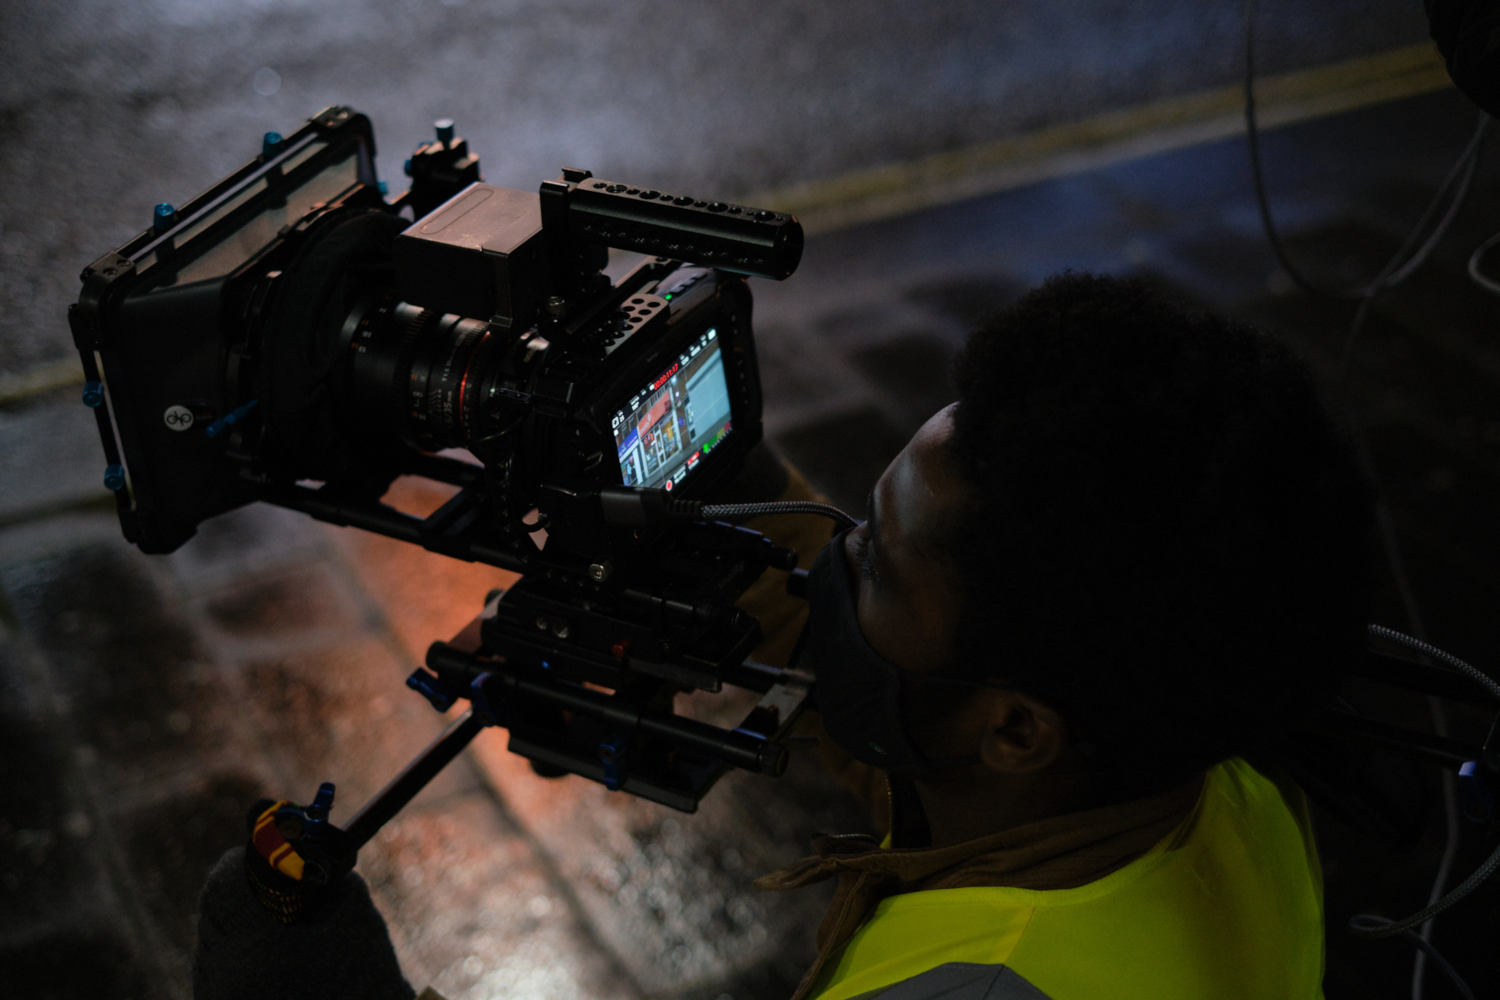 Behind the scenes image from Liam Calvert's Voyager short film of Director of Photography Matthias Djan shooting on a shoulder rig